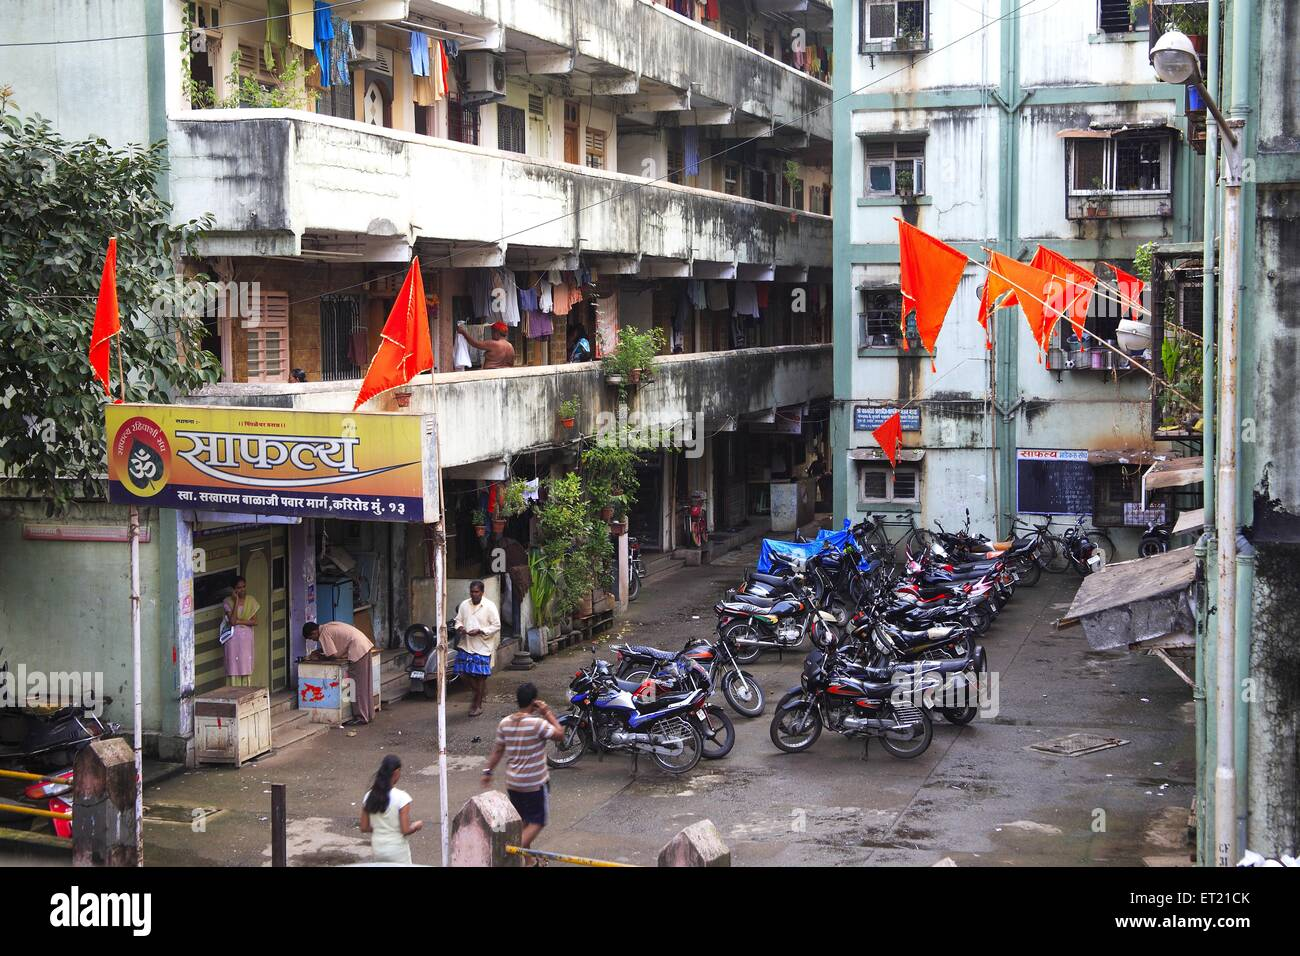 Flag and motorcycles parked in saphaly society ; Sakharam Balaji Pawar Marg ; Curry Road ; Bombay Mumbai - Stock Image